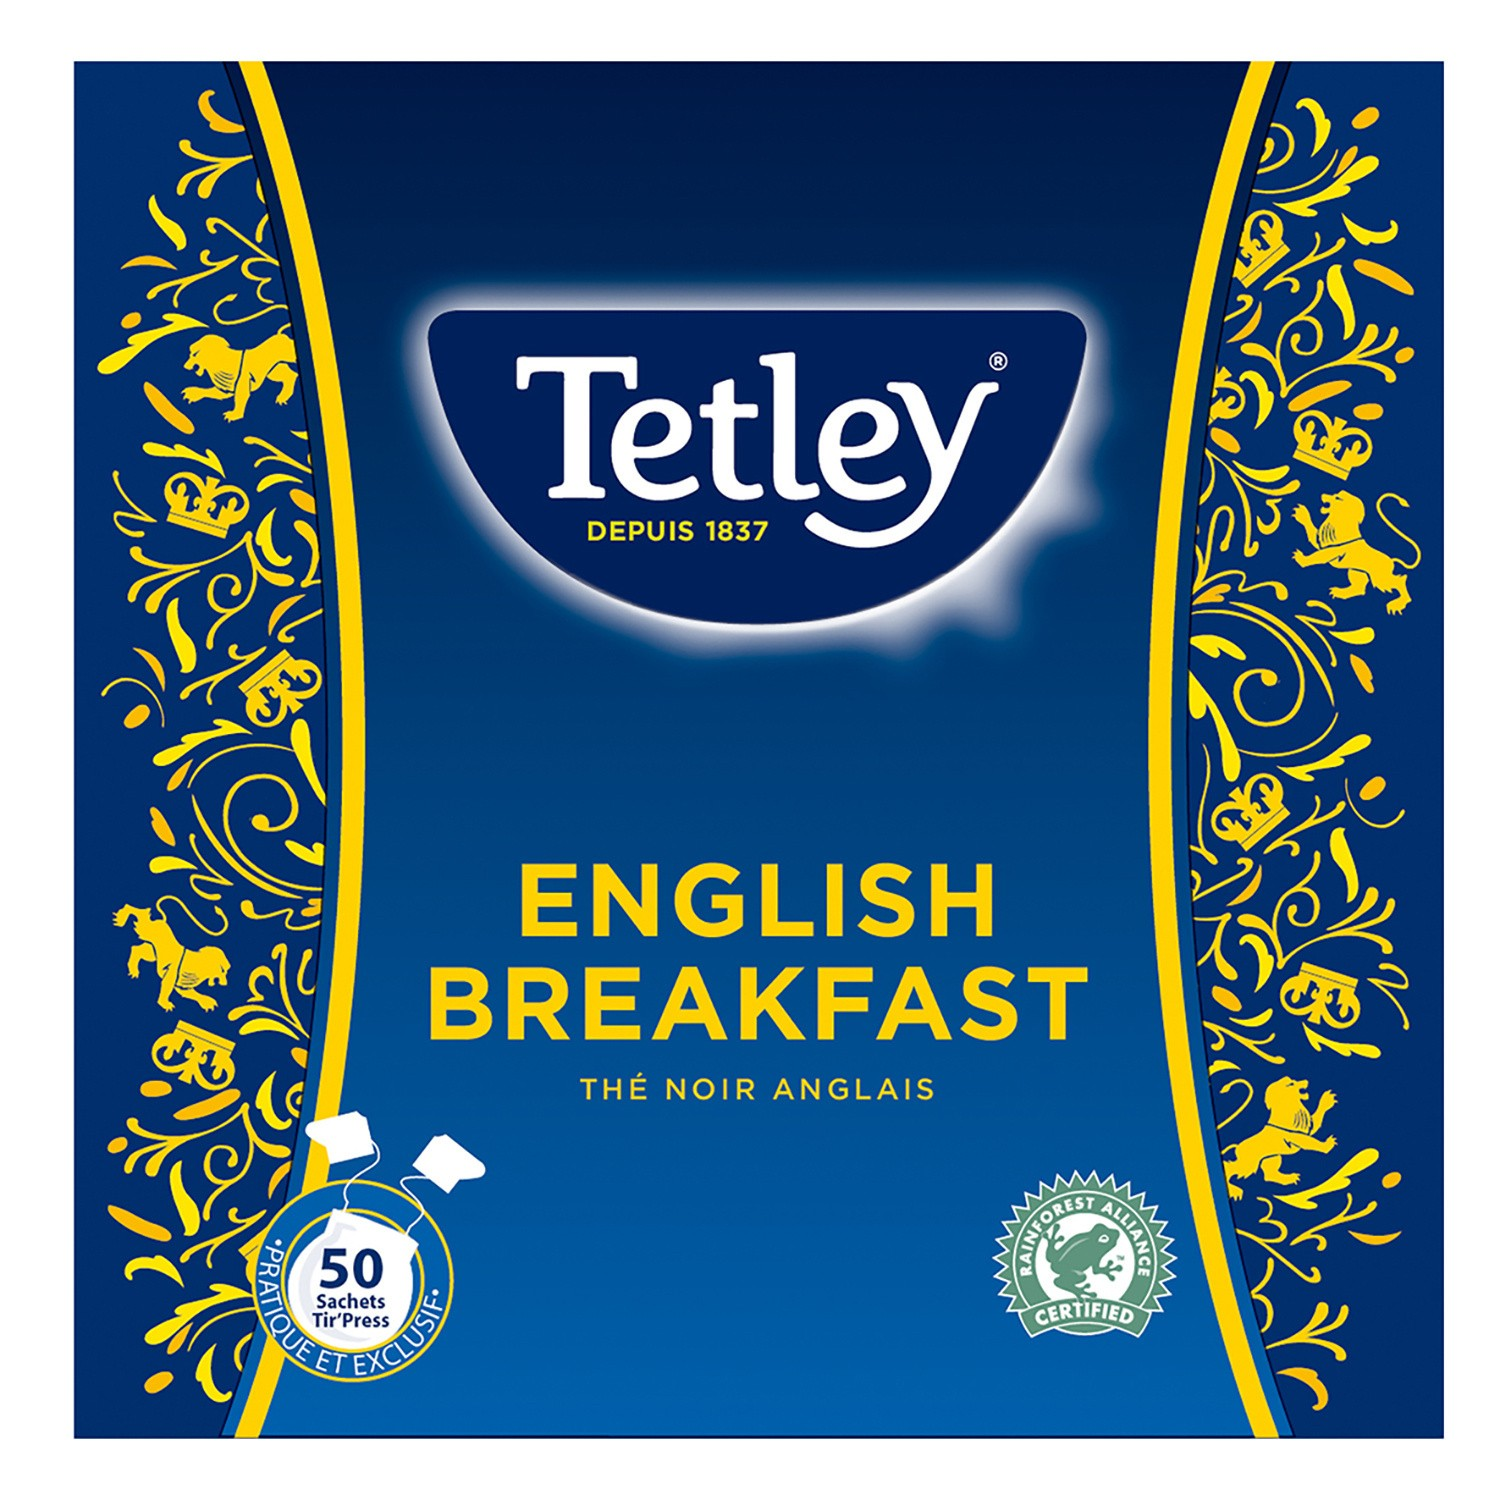 Thé English Breakfast, Tetley (50 sachets)